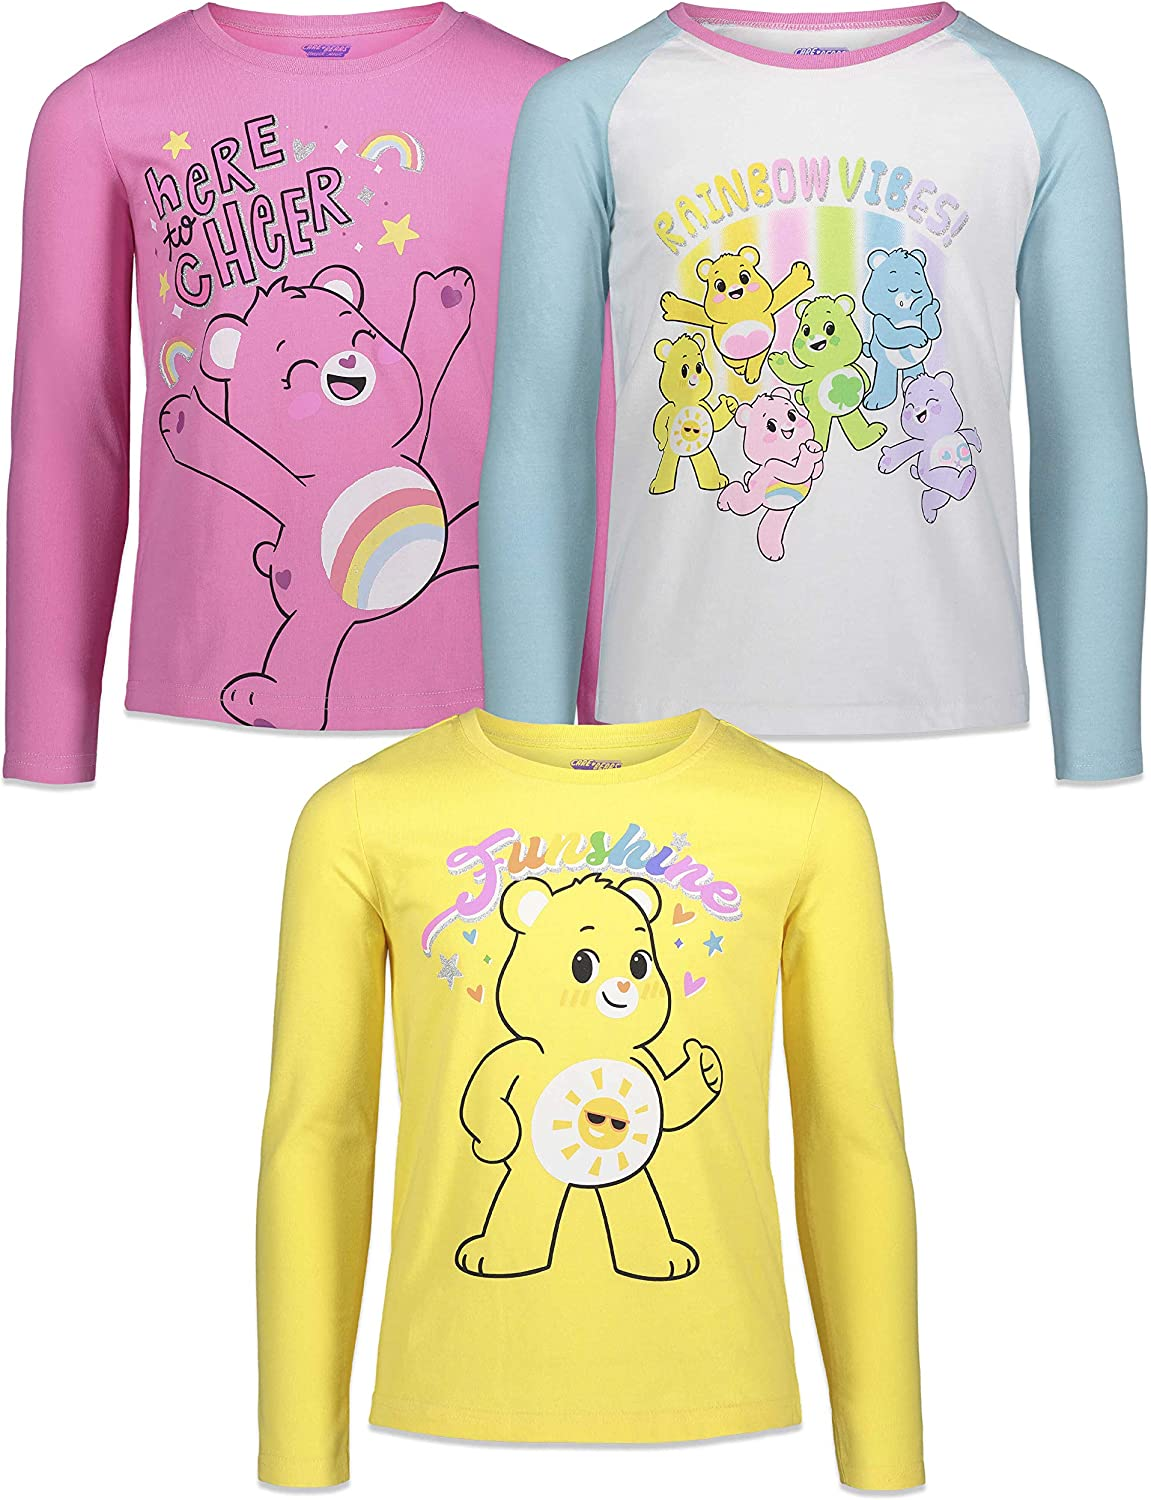 Care Bears 3 Pack Sleeve Long Minneapolis Mall price T-Shirt Graphic